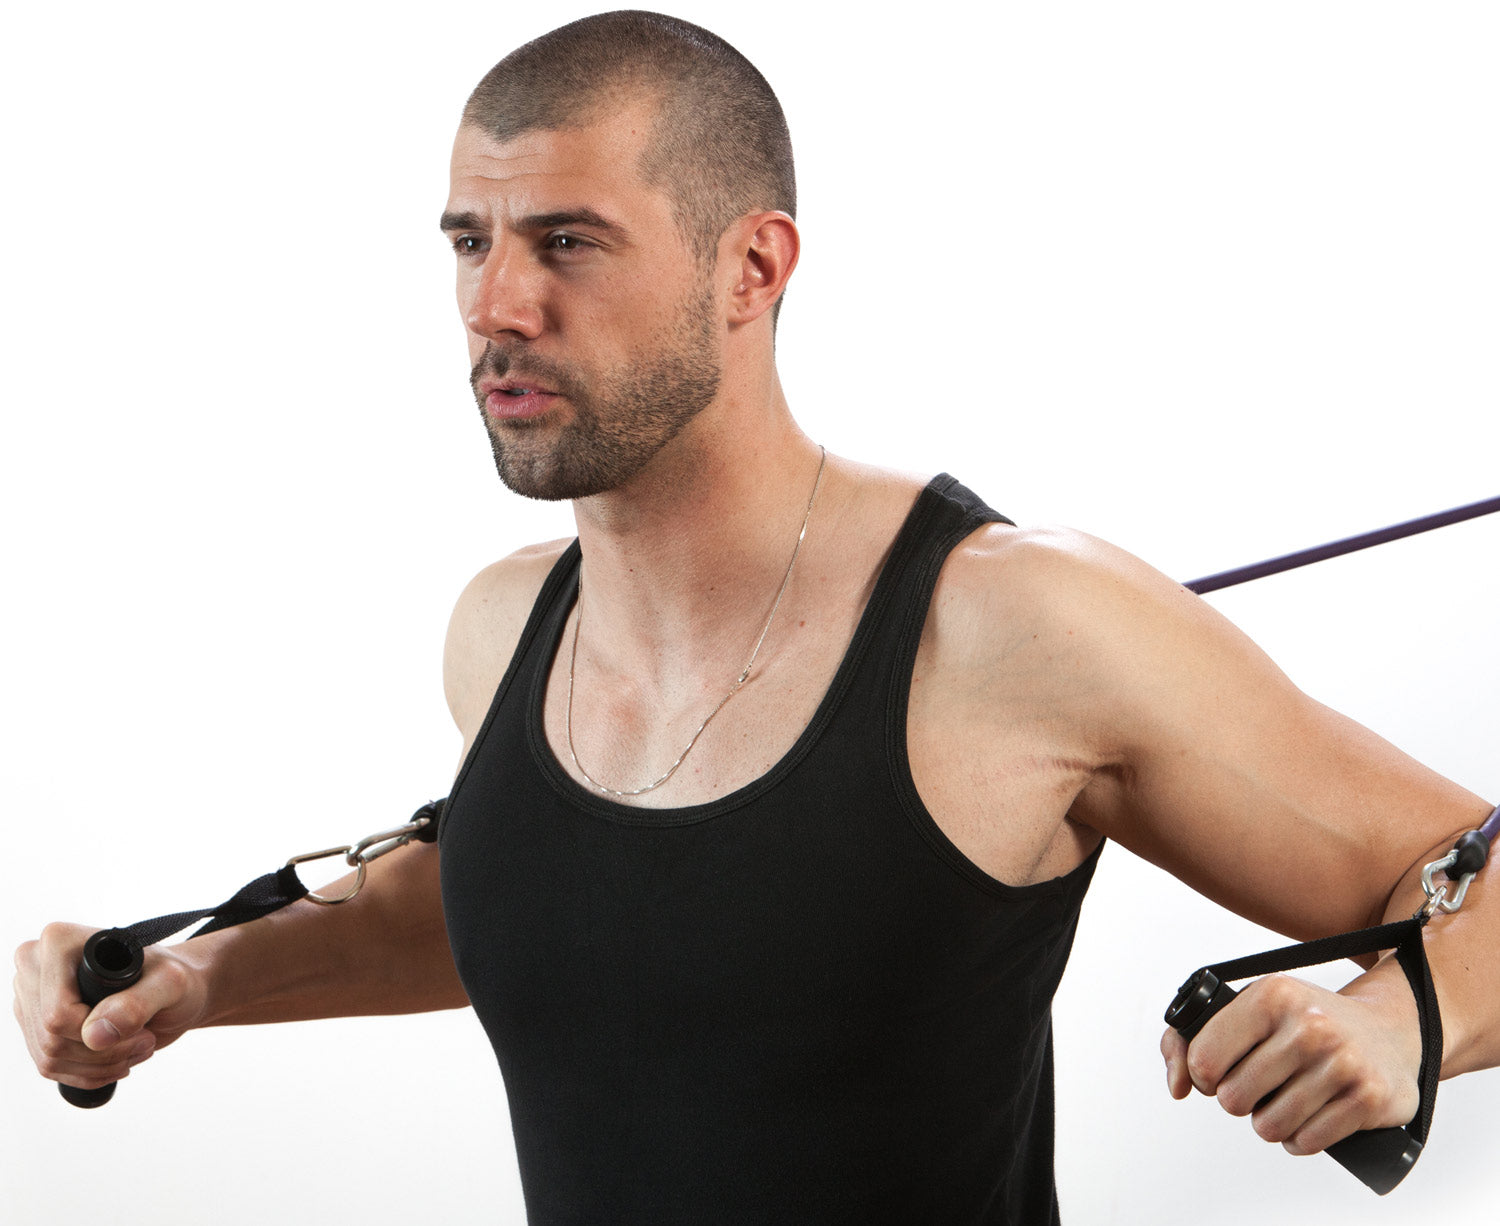 Man using ProsourceFit resistance tube for arm workout